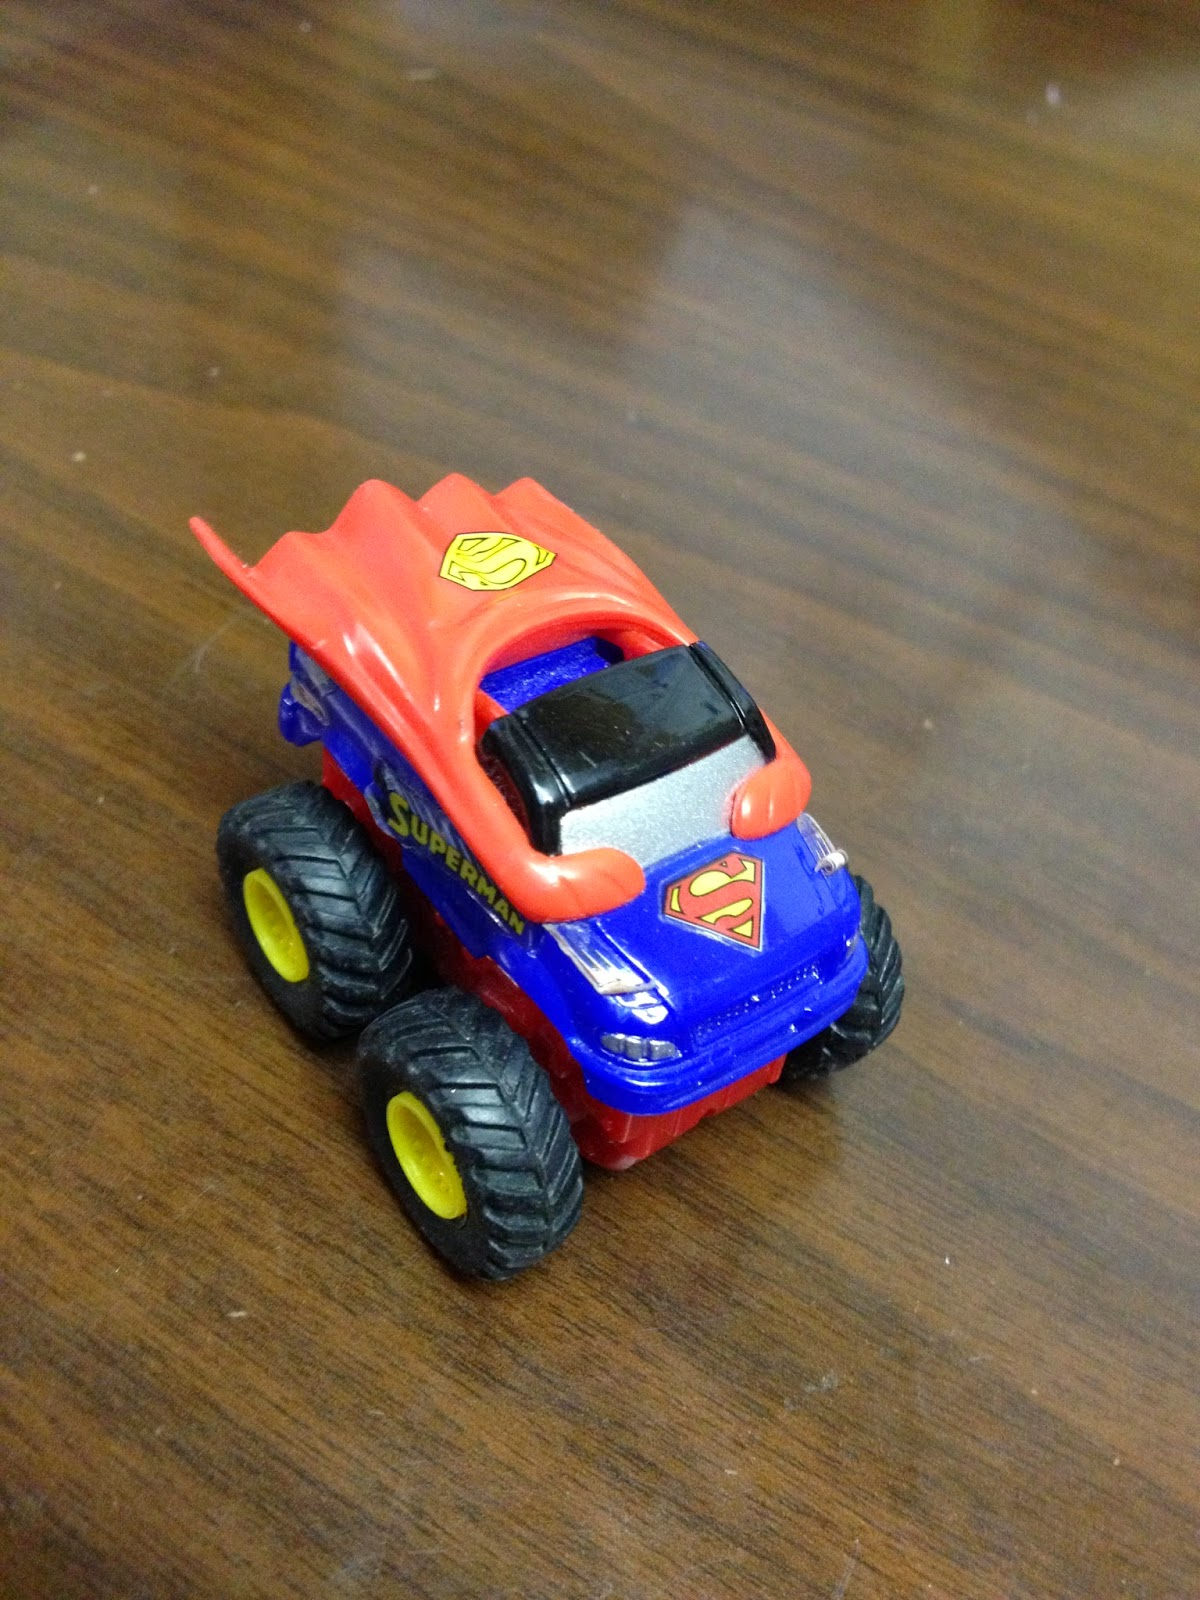 Hands On Math Miles Per Hour With Toy Cars Converting